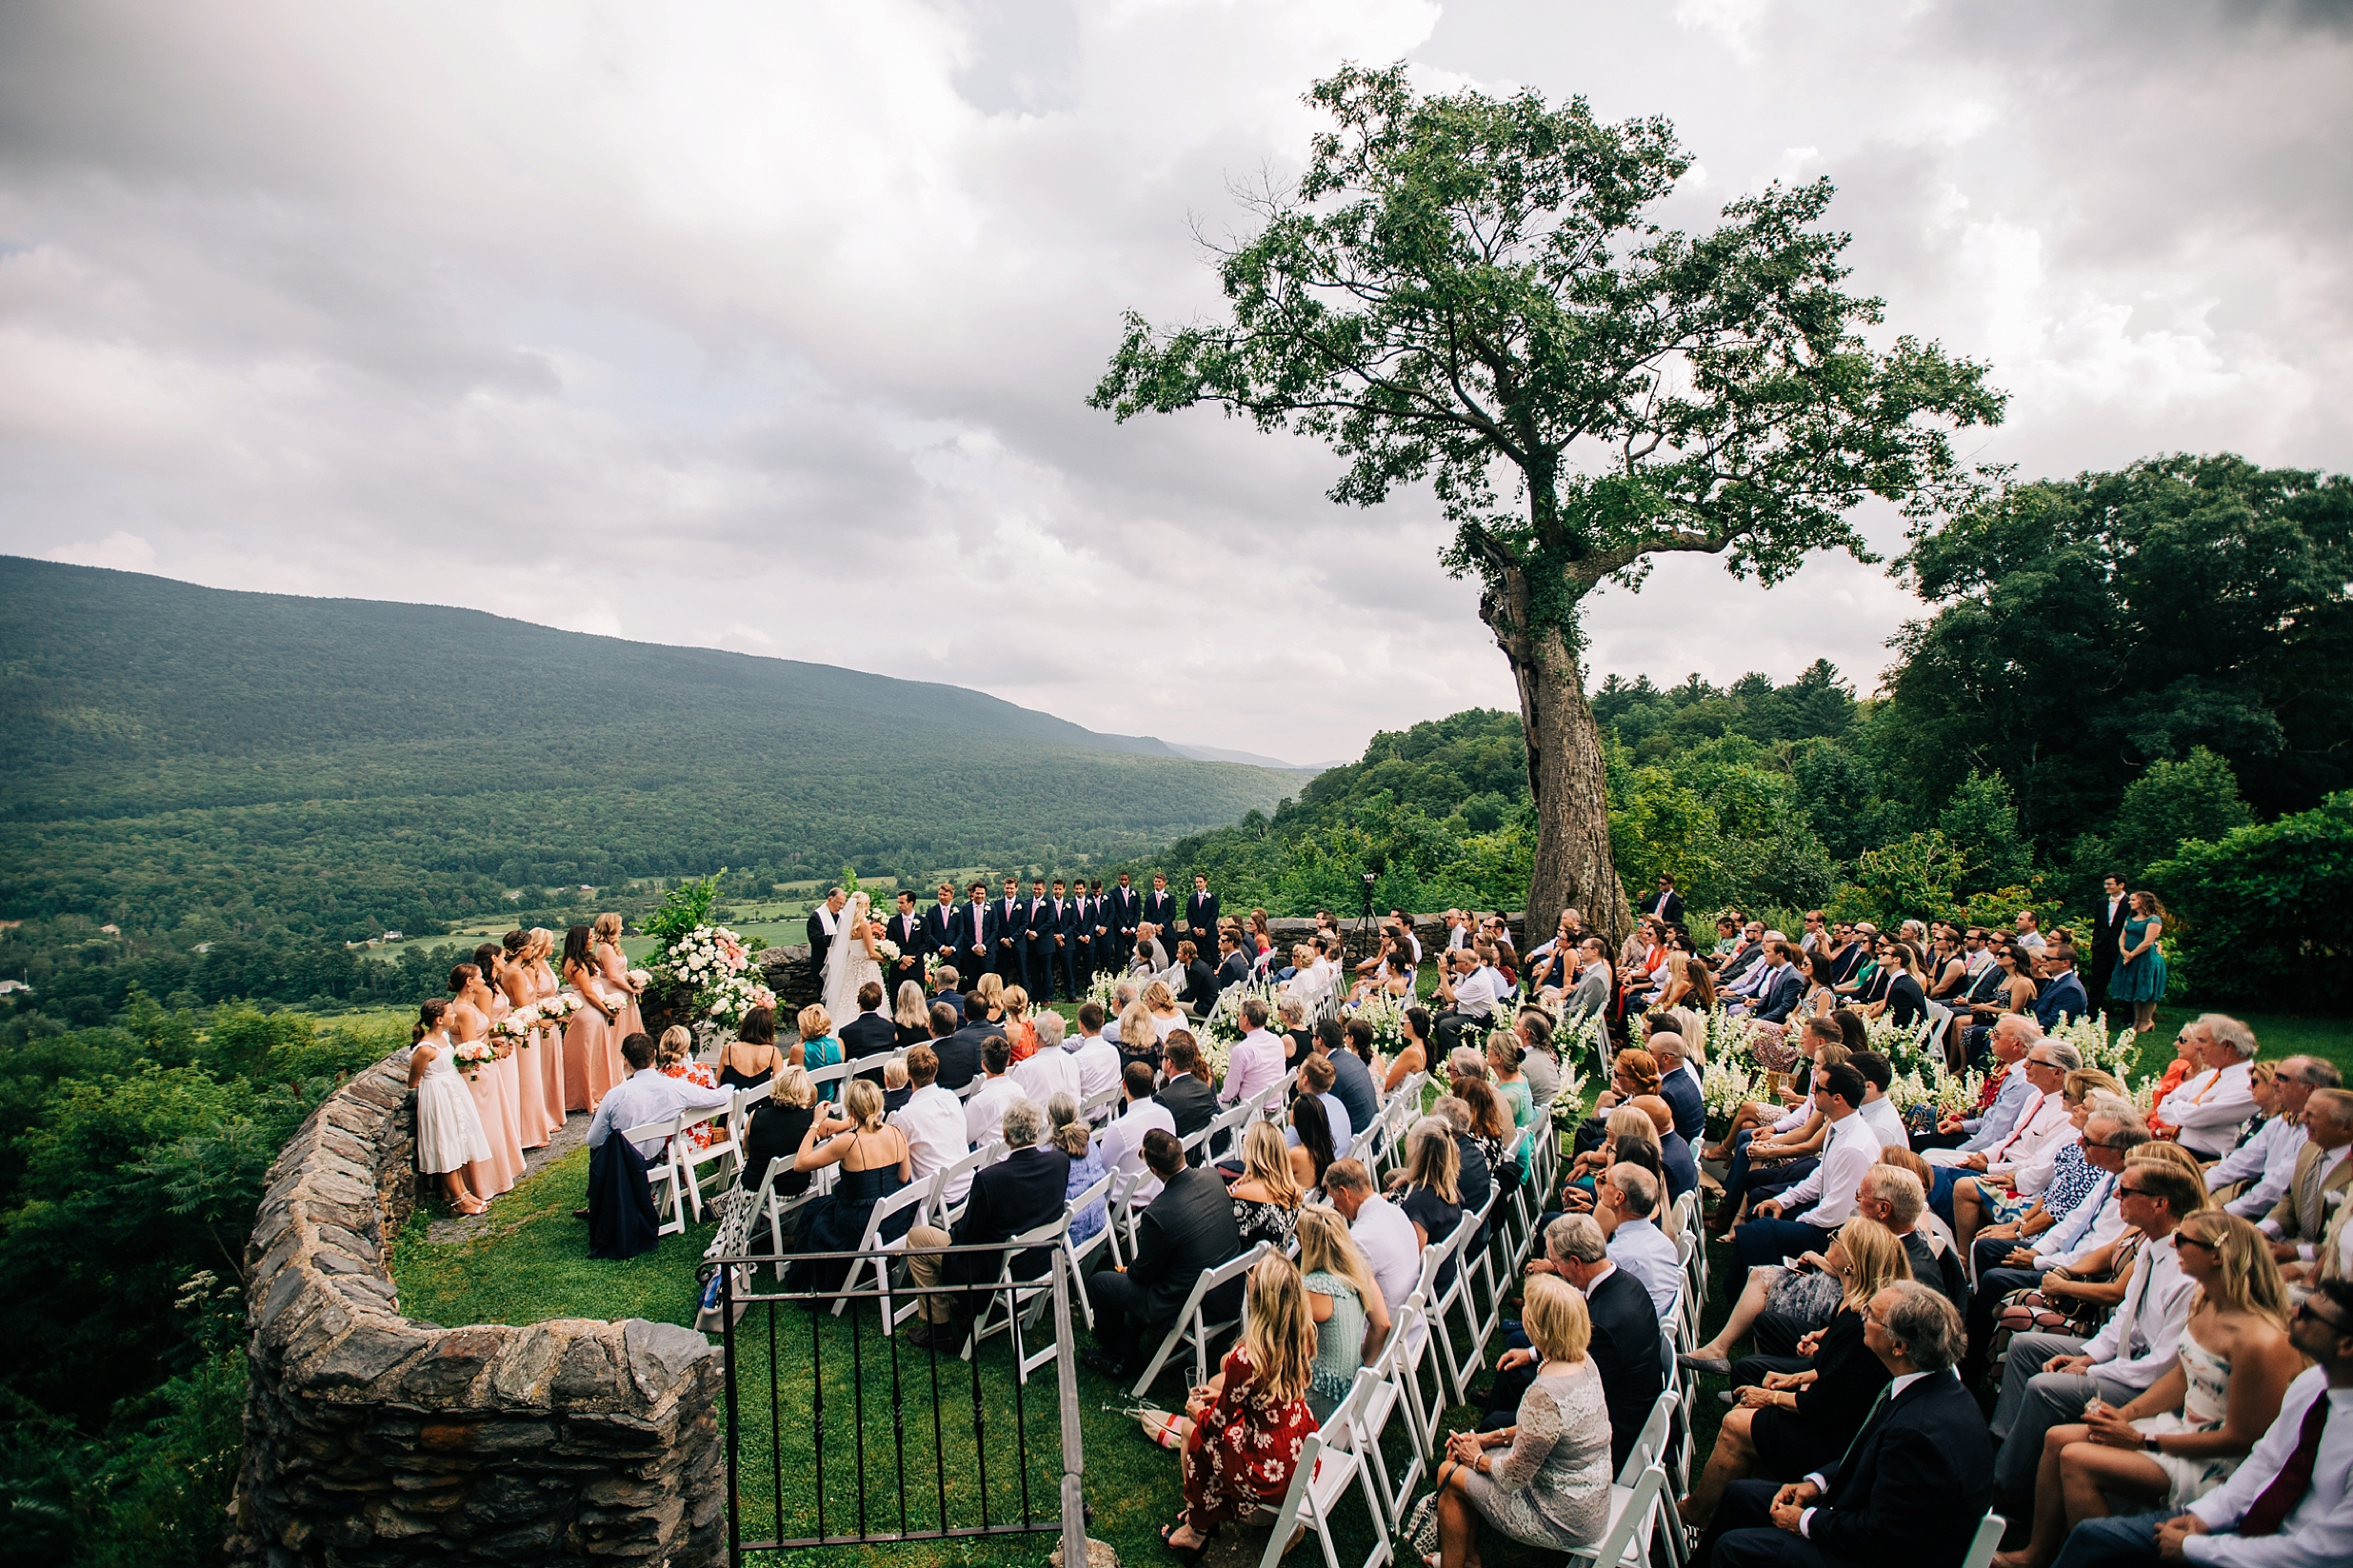 hildene-vermont-wedding-photos-outdoor-estate_0037.jpg